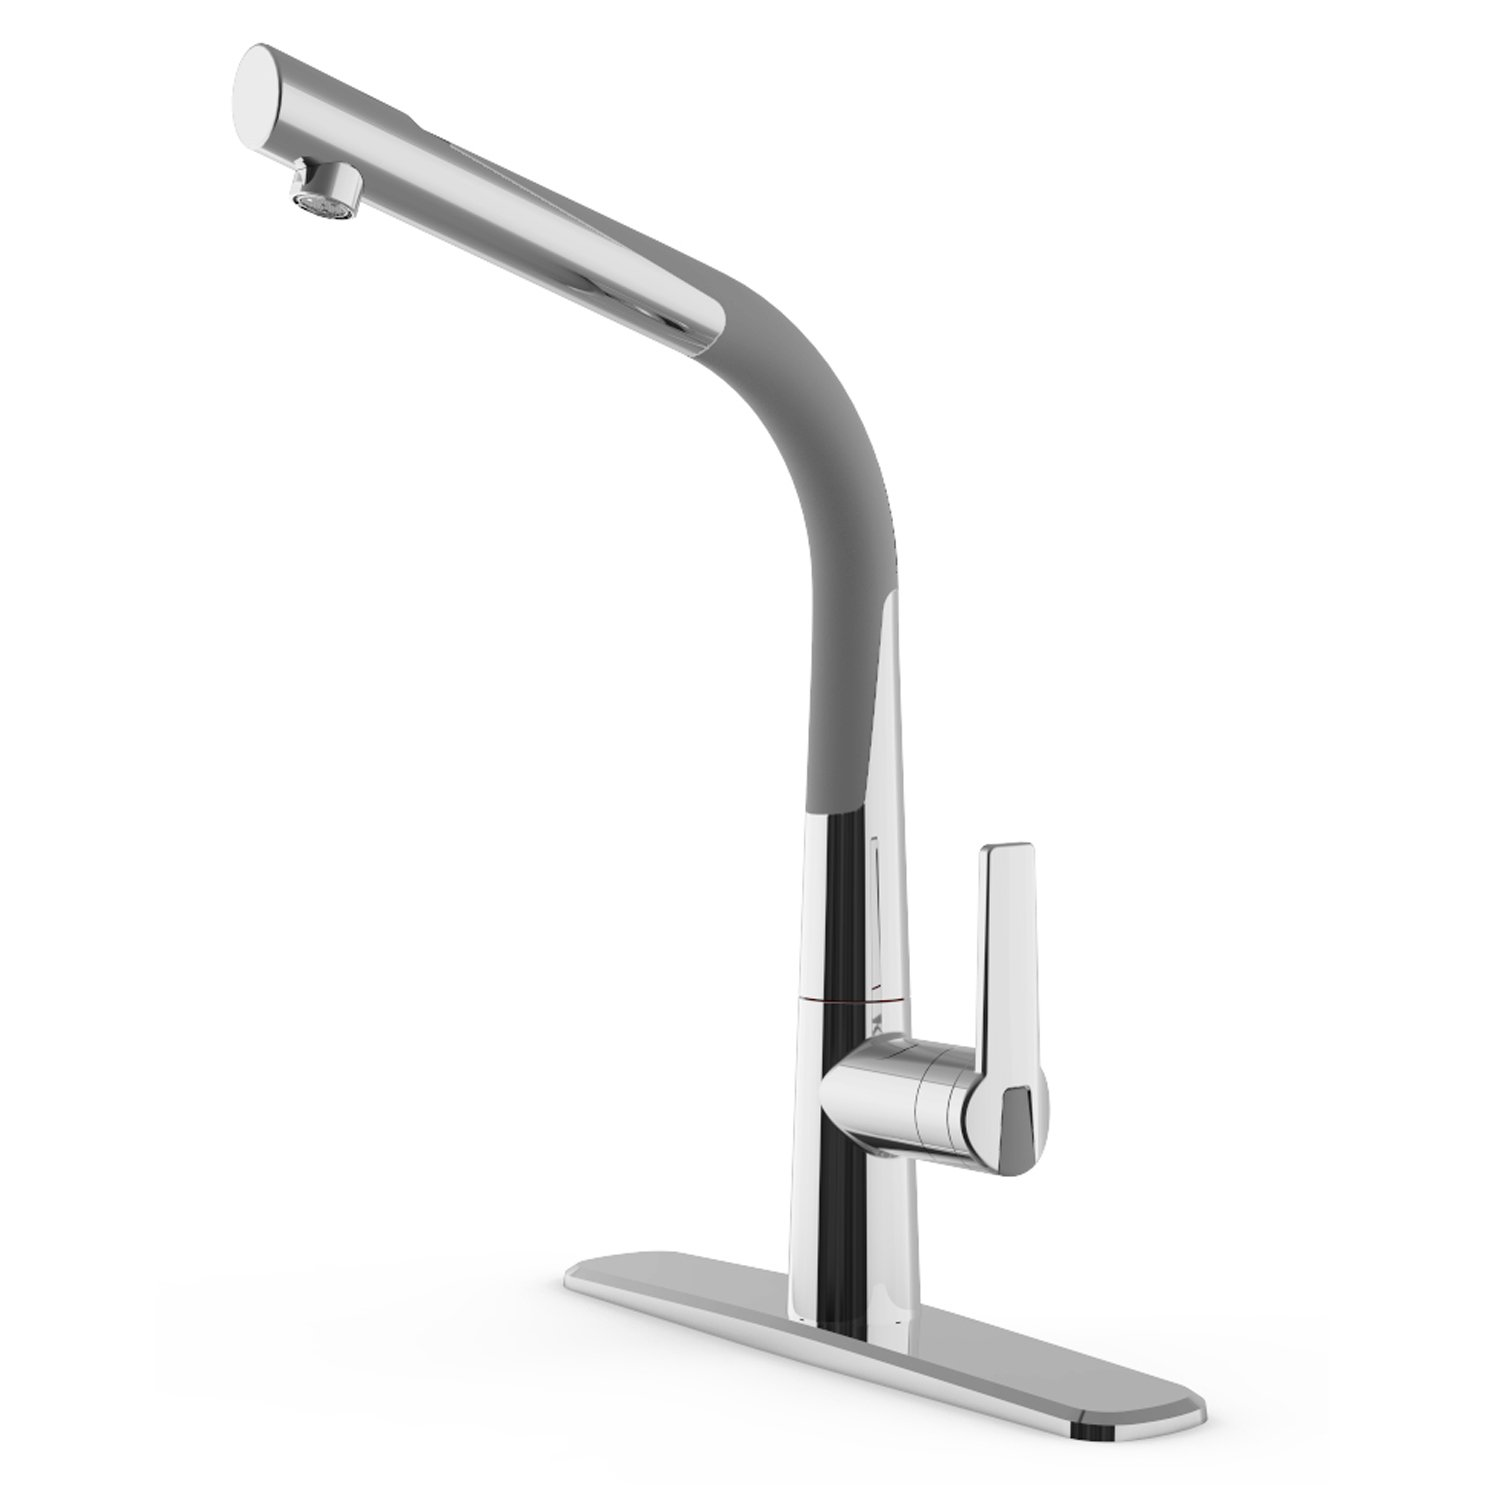 CLEANFLO 88808-70,Dancer Kitchen Faucet,1 or 3 Hole Installation, High 15.3 INCH-Arc Spout ,Flexible Spout 360 °, Patented Design,Inlet Nylon Braided Hose, Non Corrosive, Lead-Free, Chrome/Gray